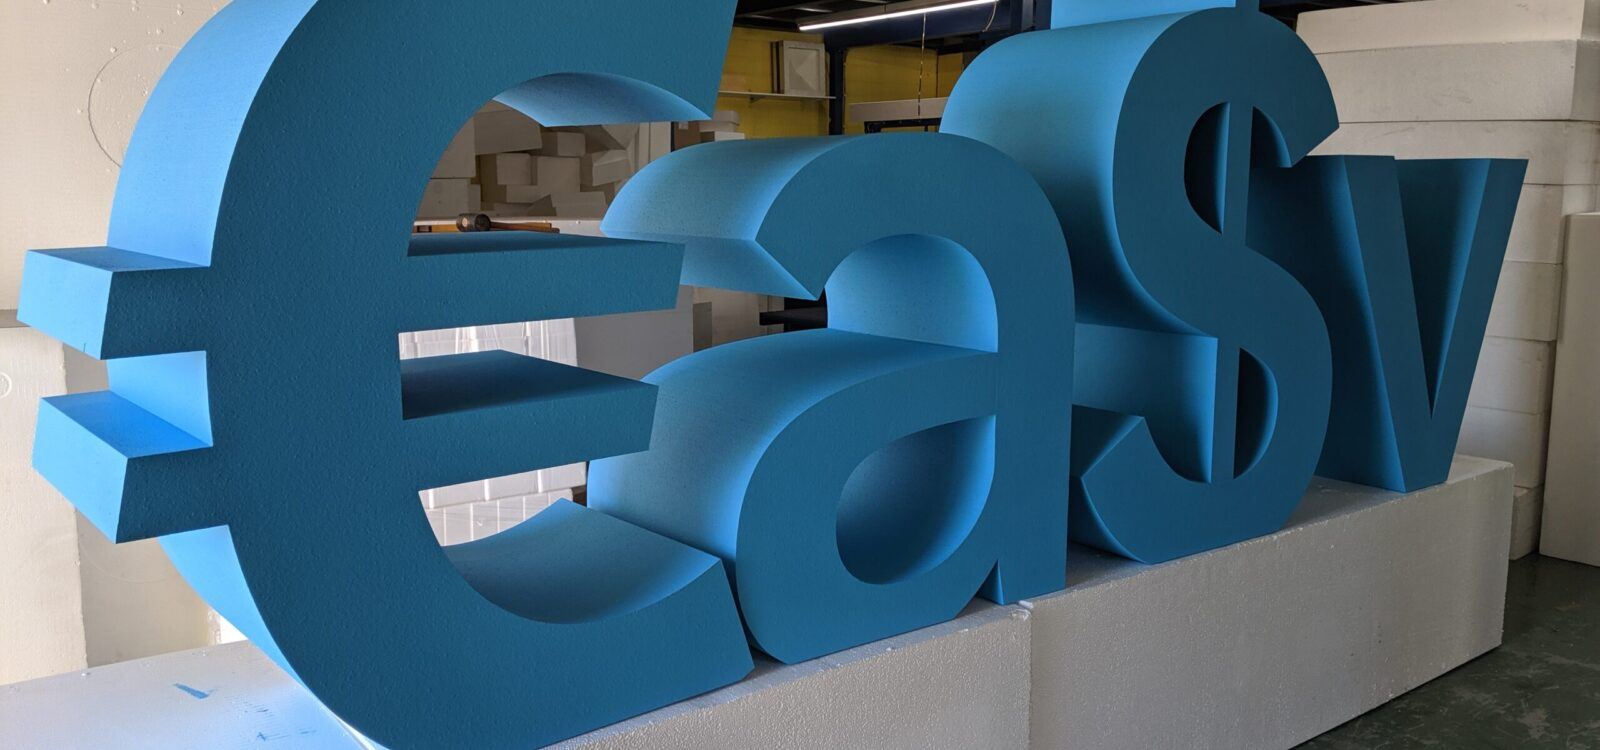 1.5m Tall Easy Polystyrene Letters Painted Blue